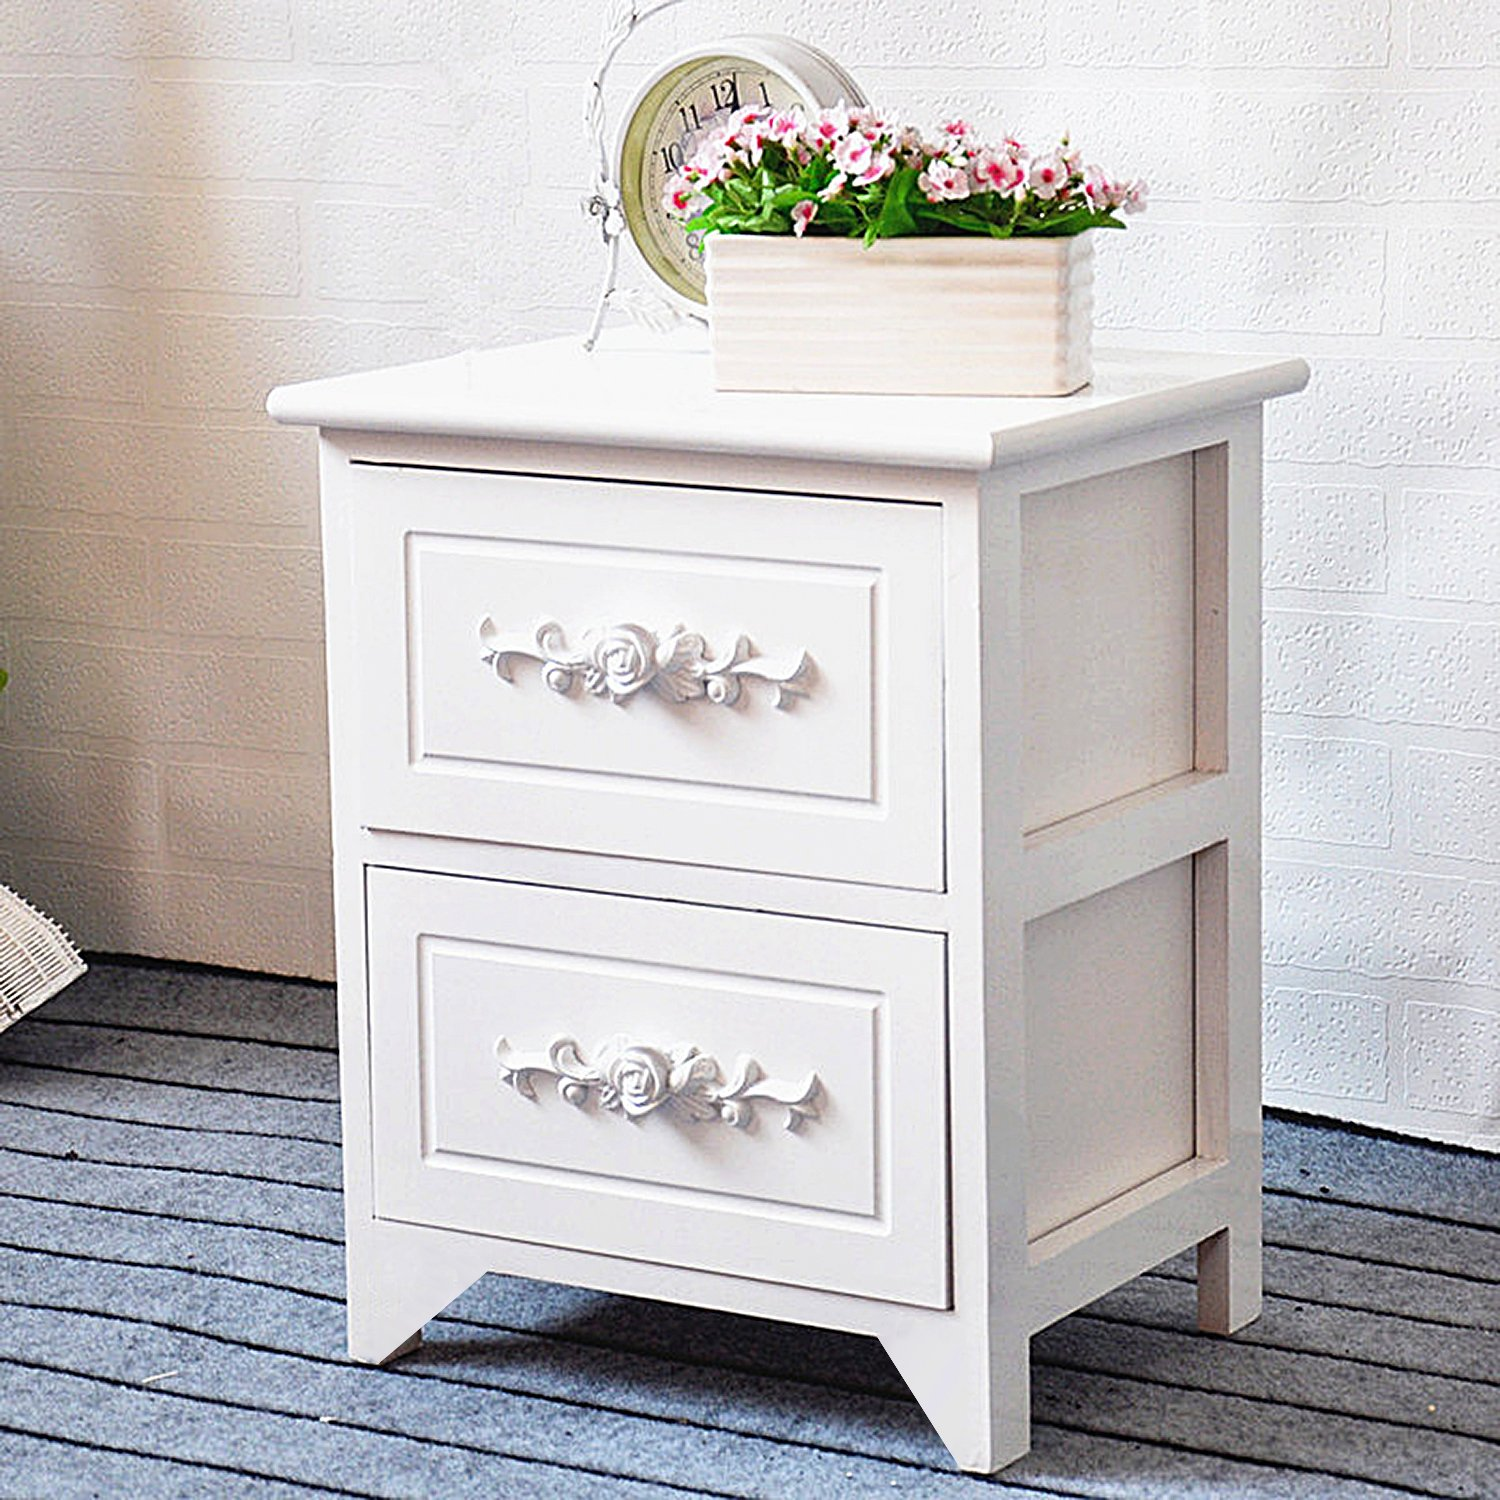 DL furniture - Fully Assembled Tone Finish Night Stand 2 Drawer Storage Shelf Organizer | White by DL furniture